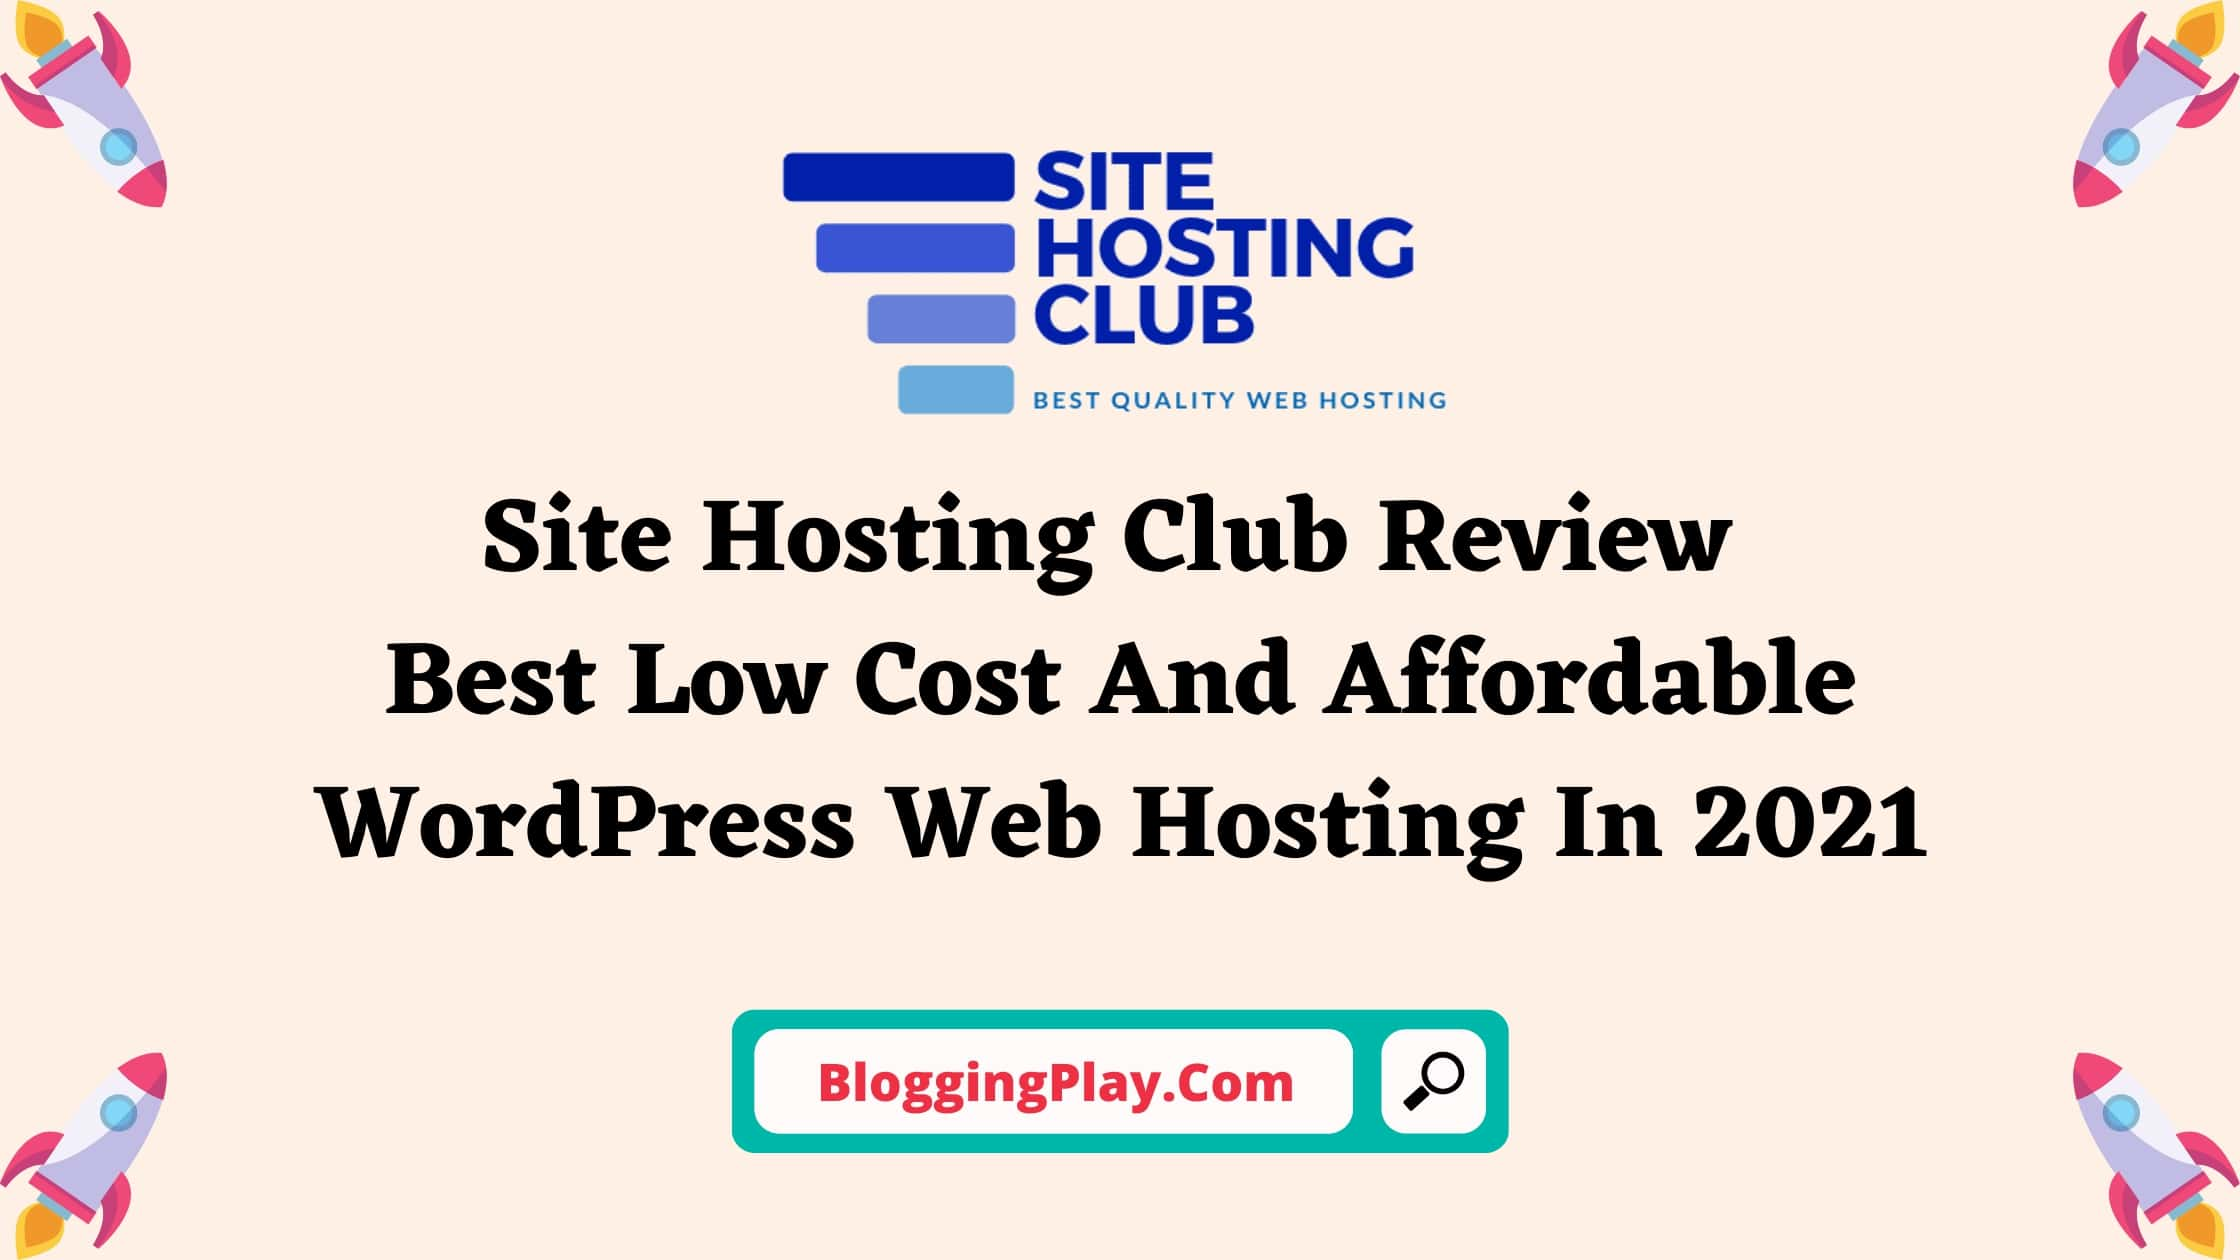 Site Hosting Club Review Blog Post